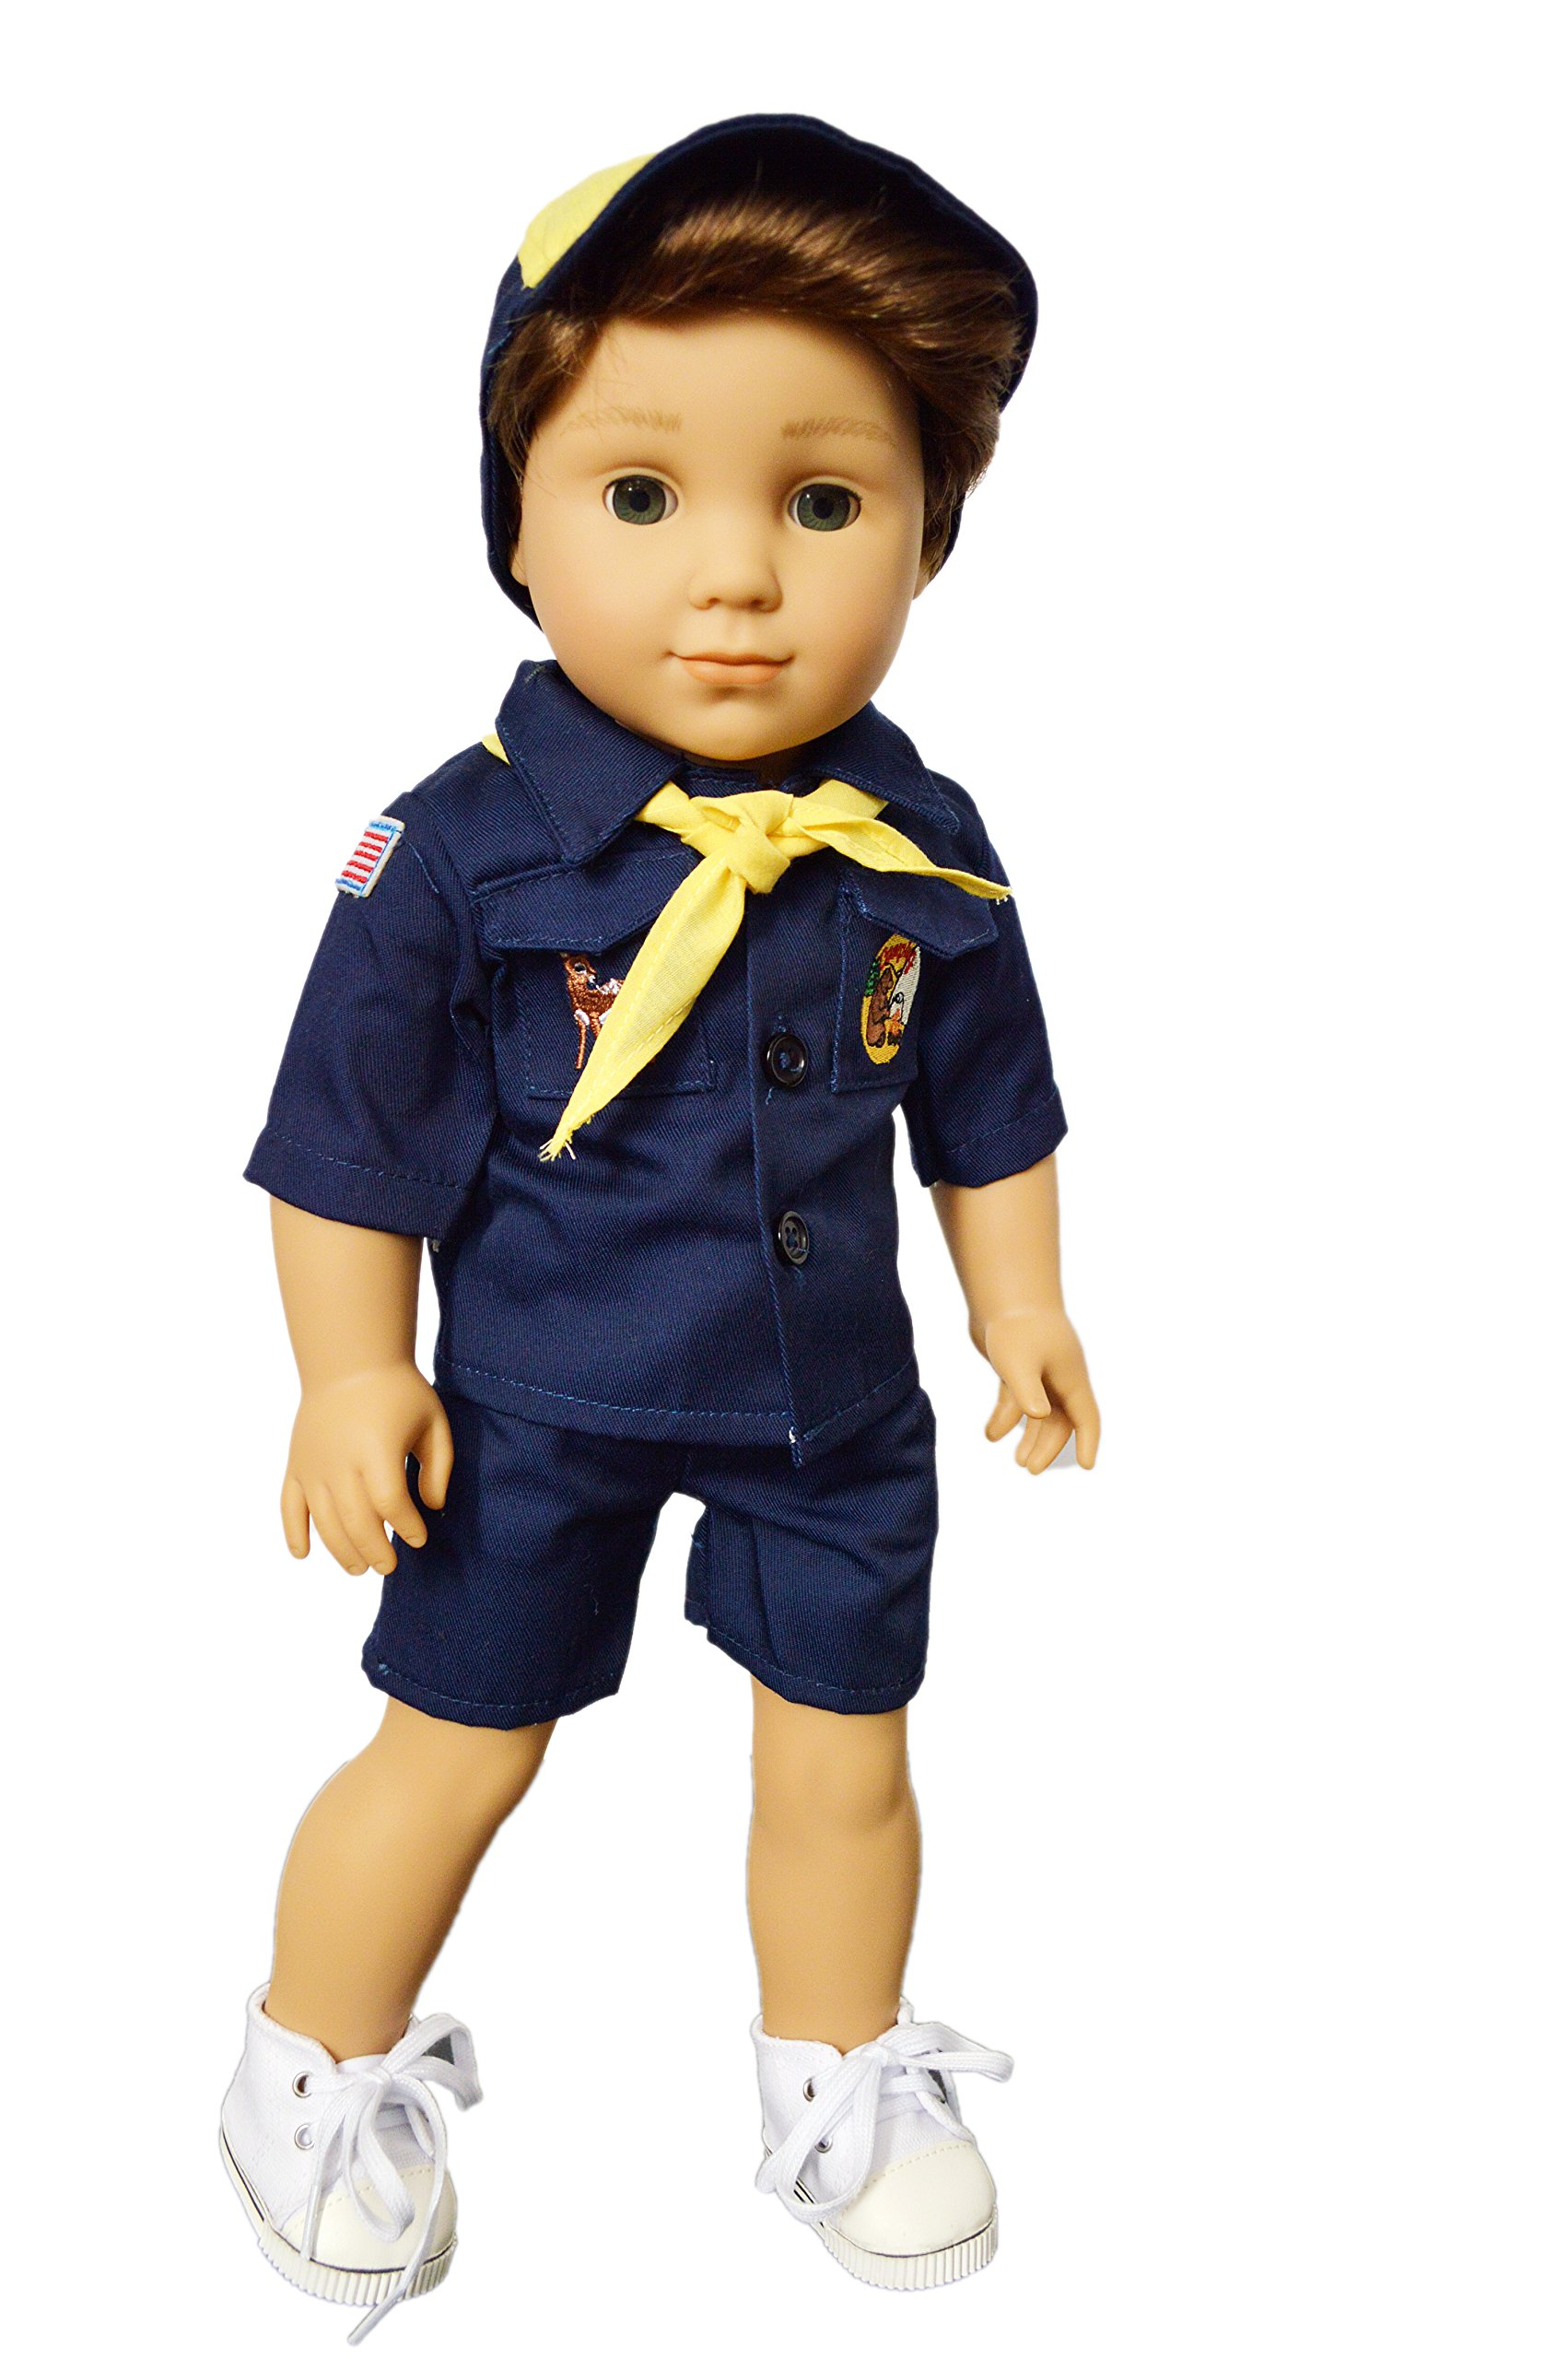 Brittany's My Cub Scouts Uniform with Embroidered Patches Compatible with American Girl Boy Dolls- 18 Inch Boy Doll Clothes by Brittany's